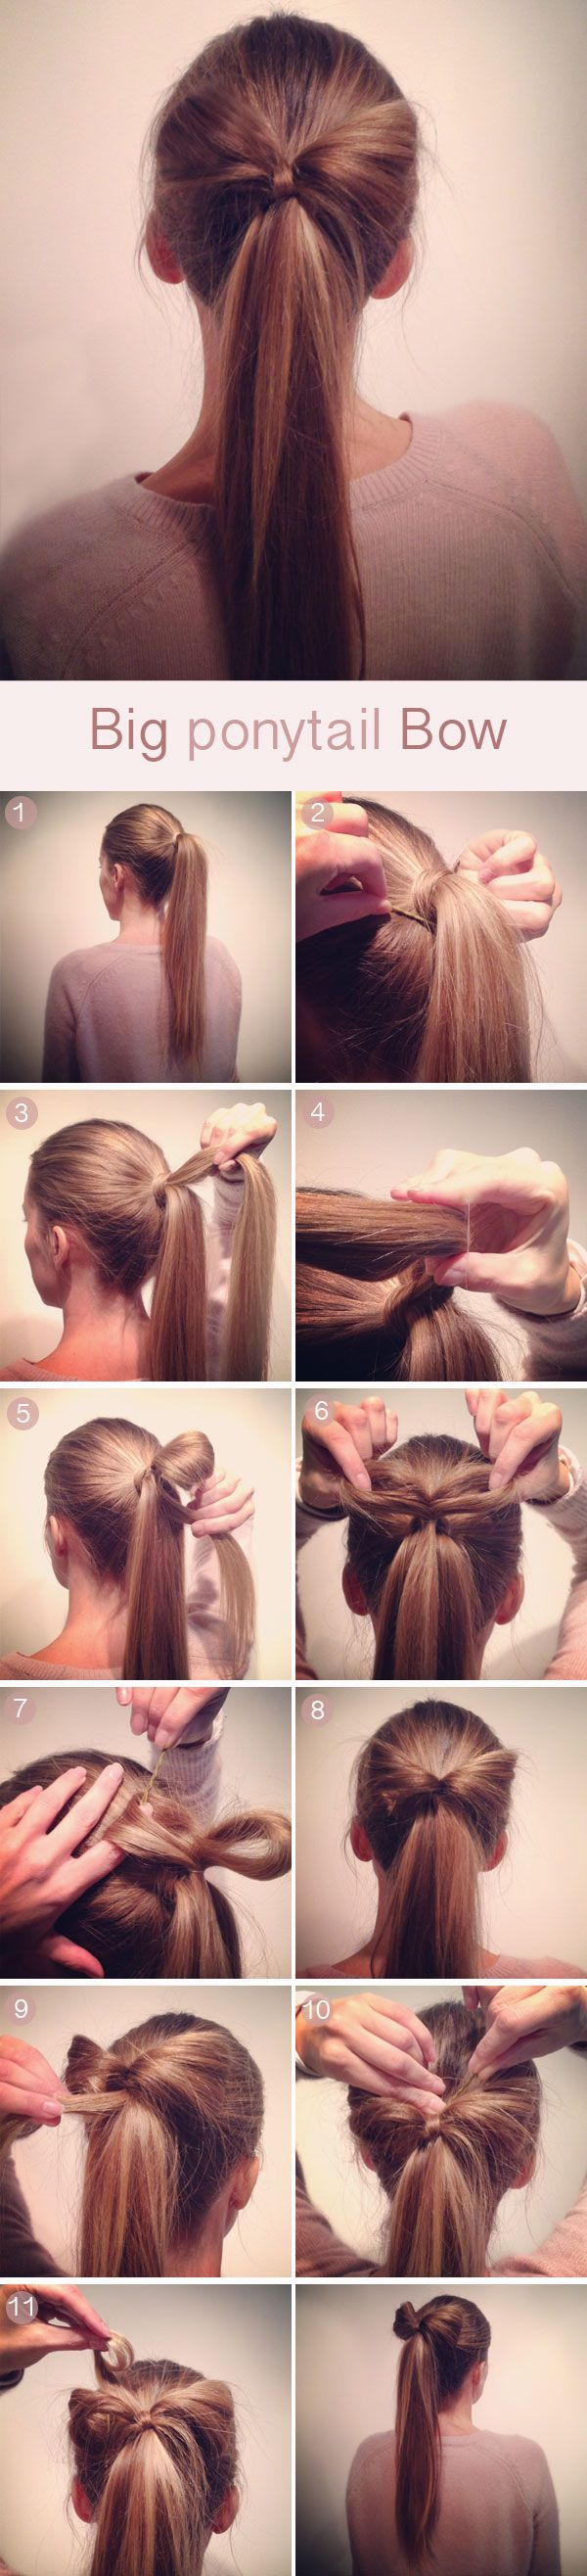 12 Super Easy Ponytail Hairstyles: 12 Super Easy Ponytail Hairstyles